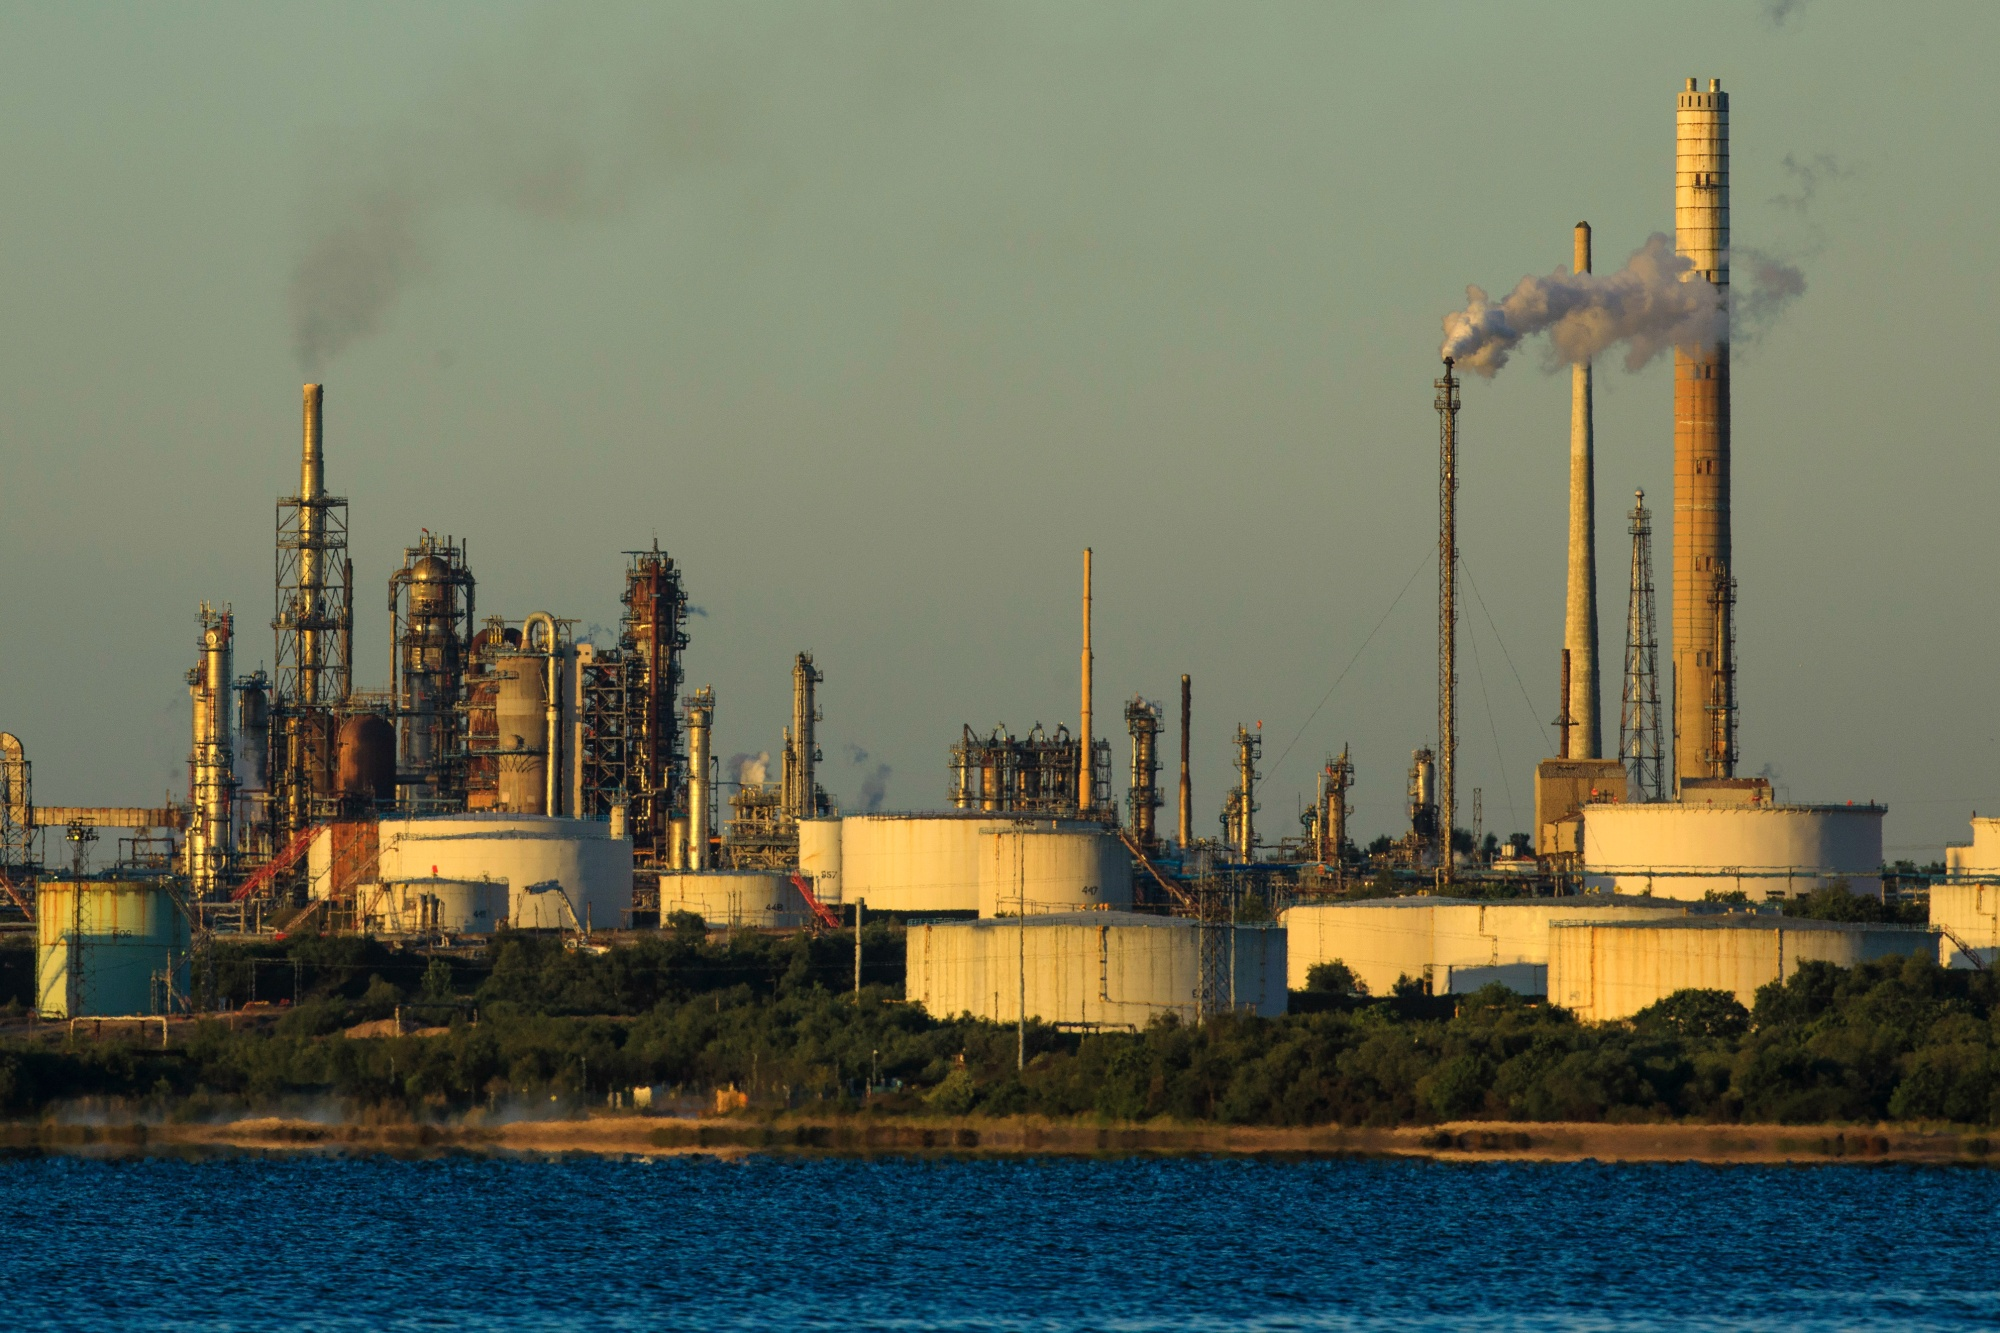 The Esso Fawley Oil Refinery, operated by Exxon Mobil Corp. in Fawley, U.K.